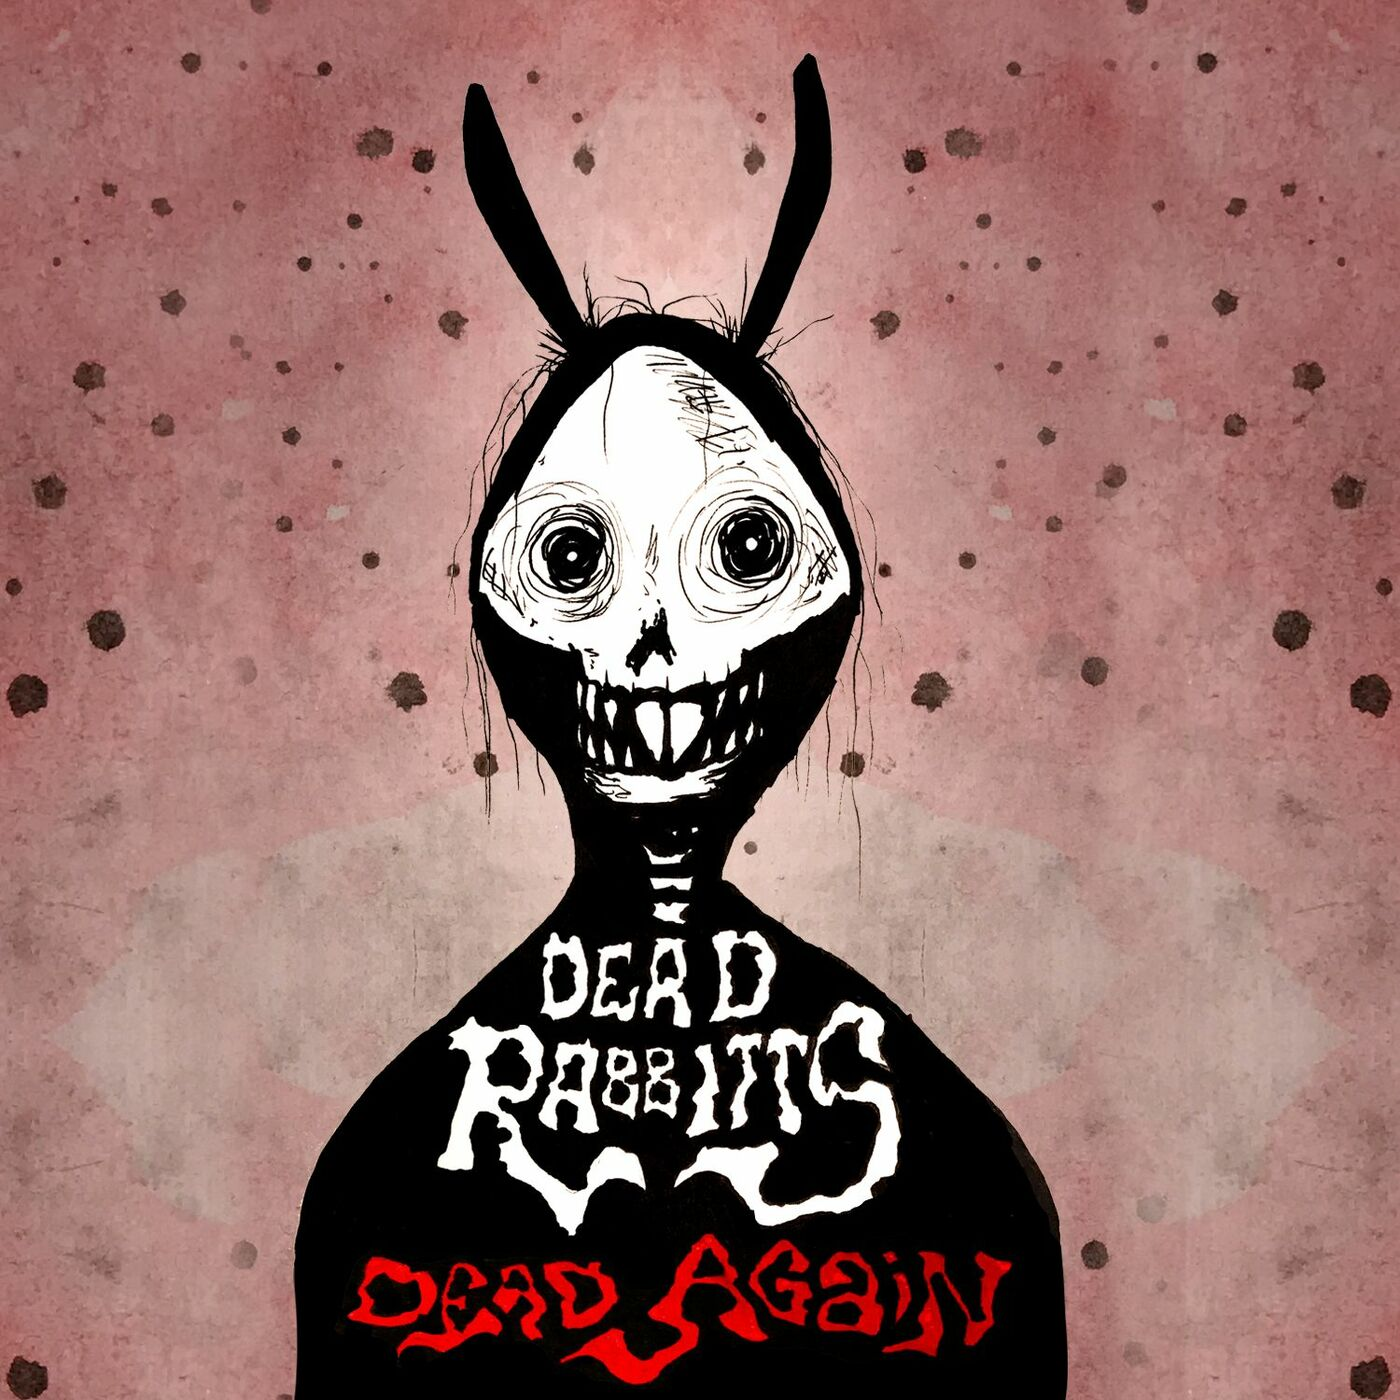 The Dead Rabbitts - Dead Again [single] (2017)